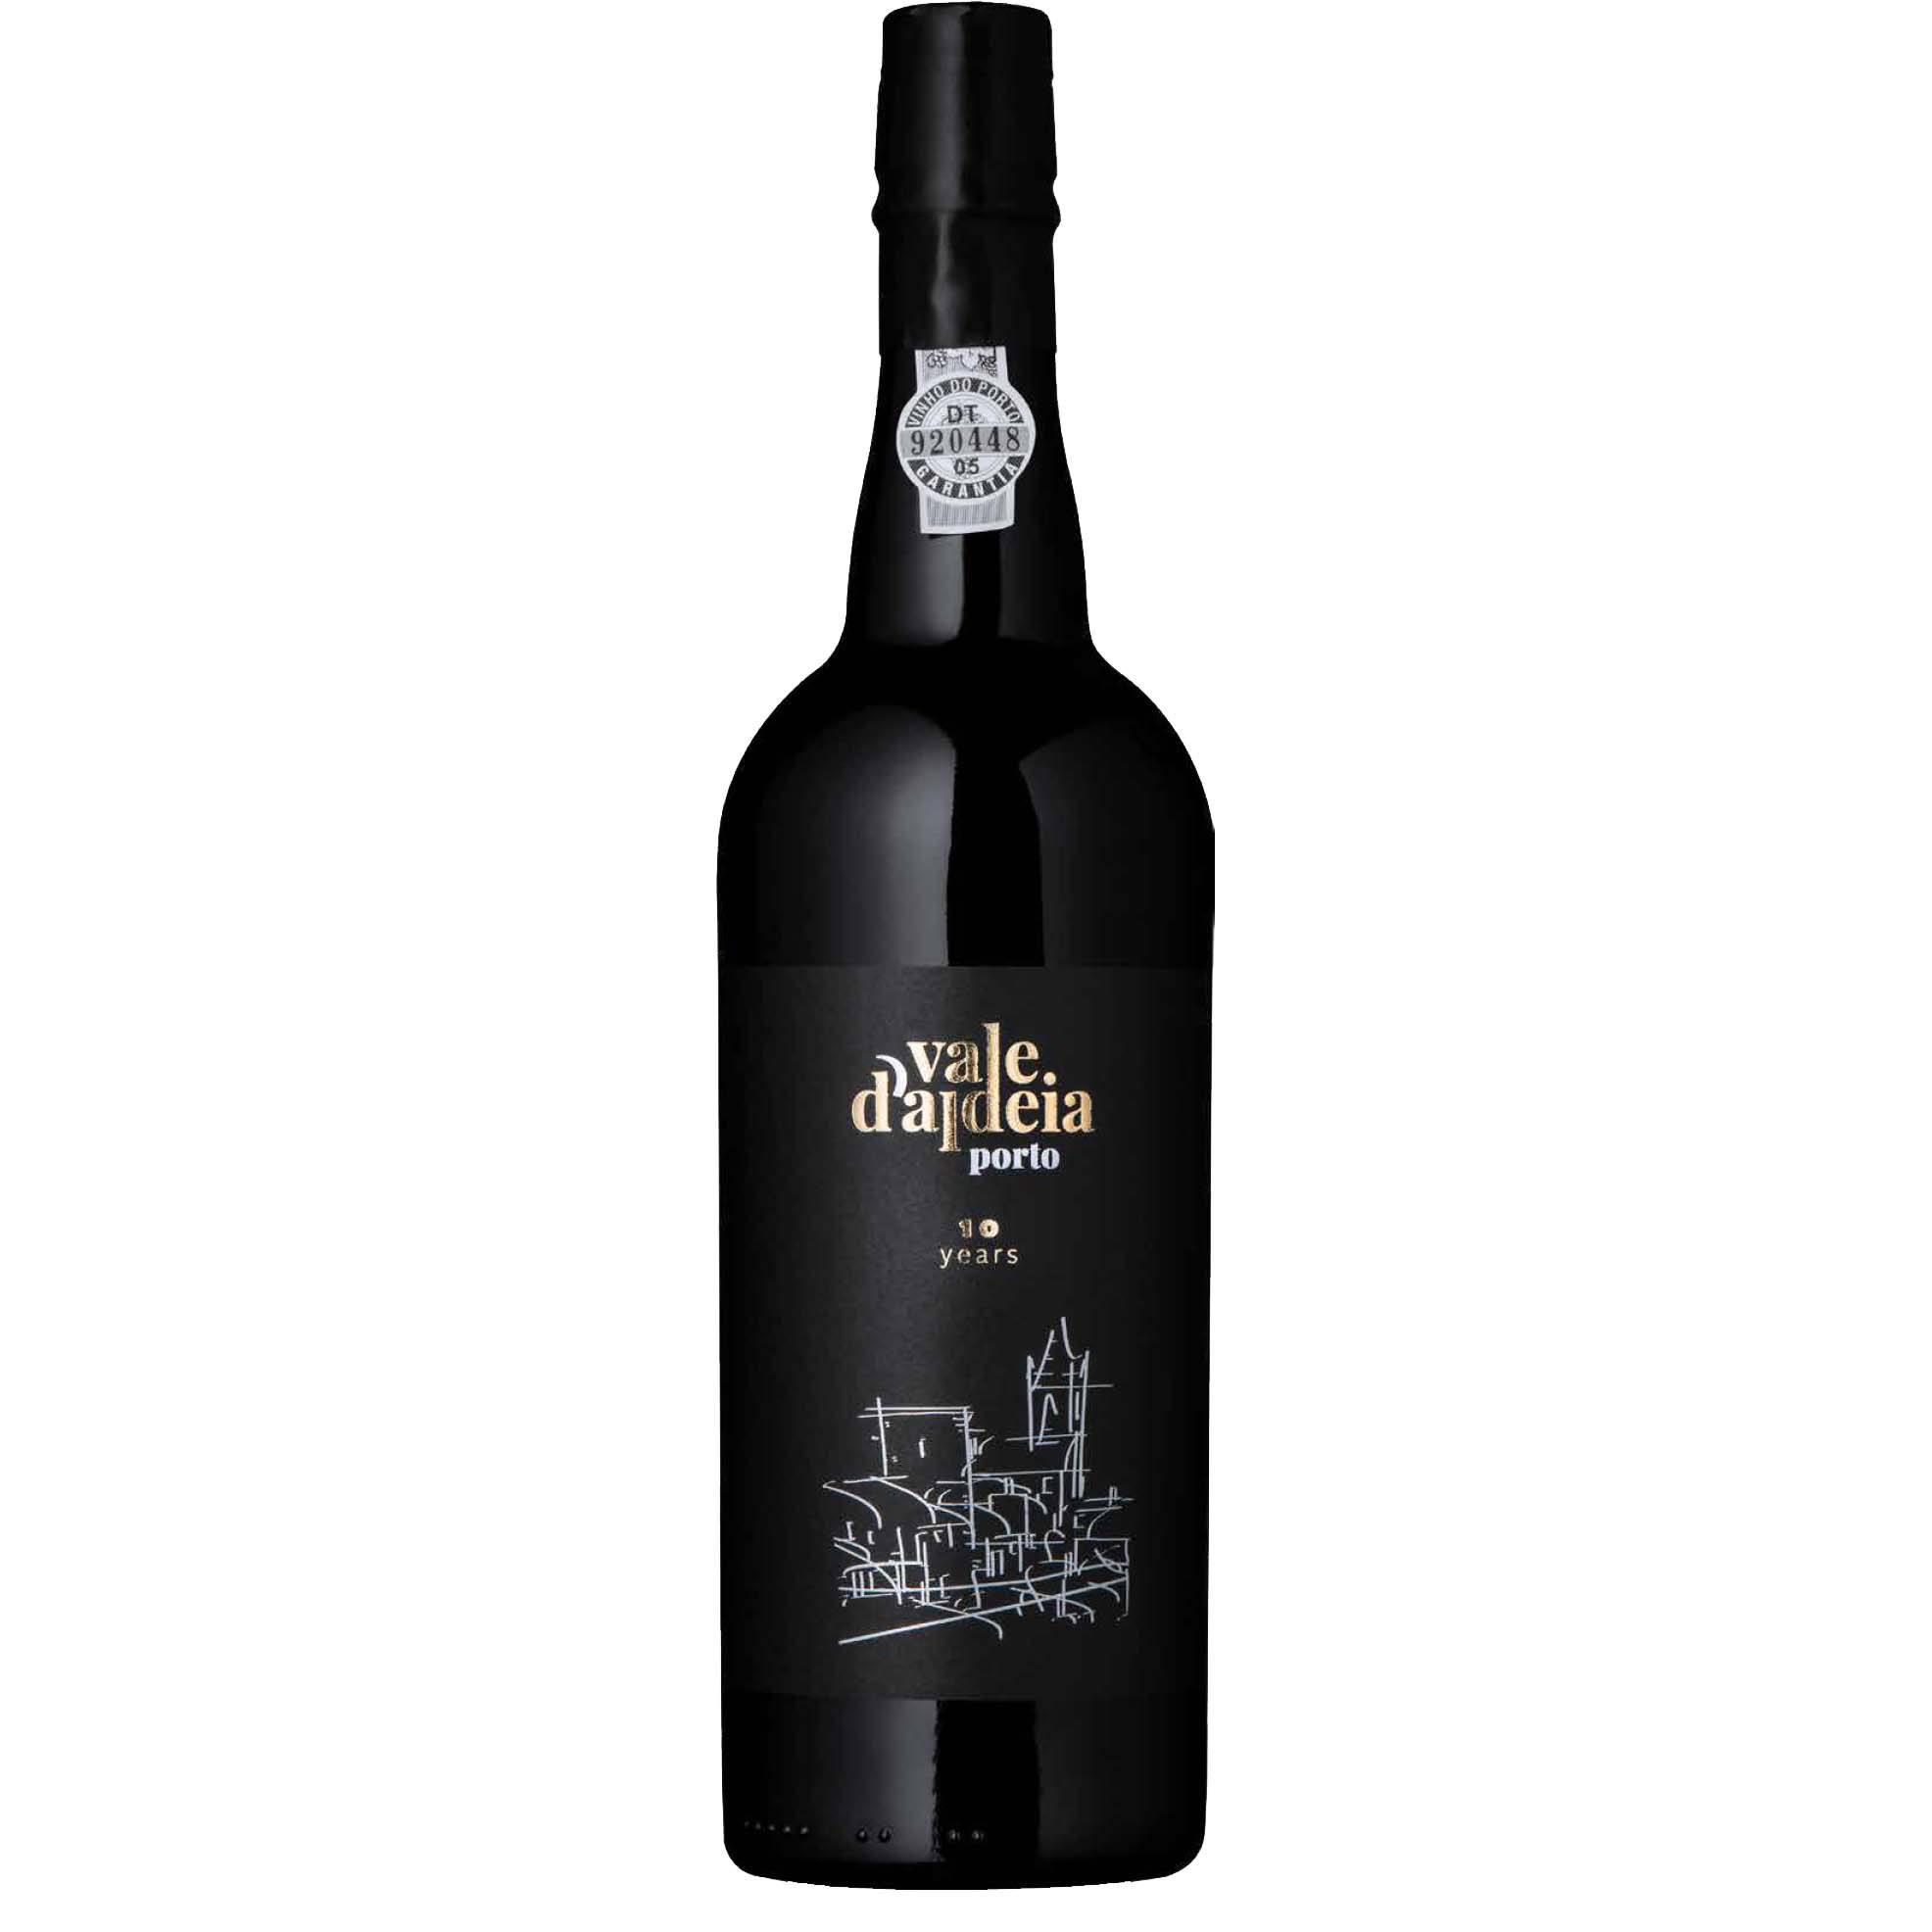 Vinho do Porto Quinta Vale d' Aldeia Porto 10 Years - 750ml -